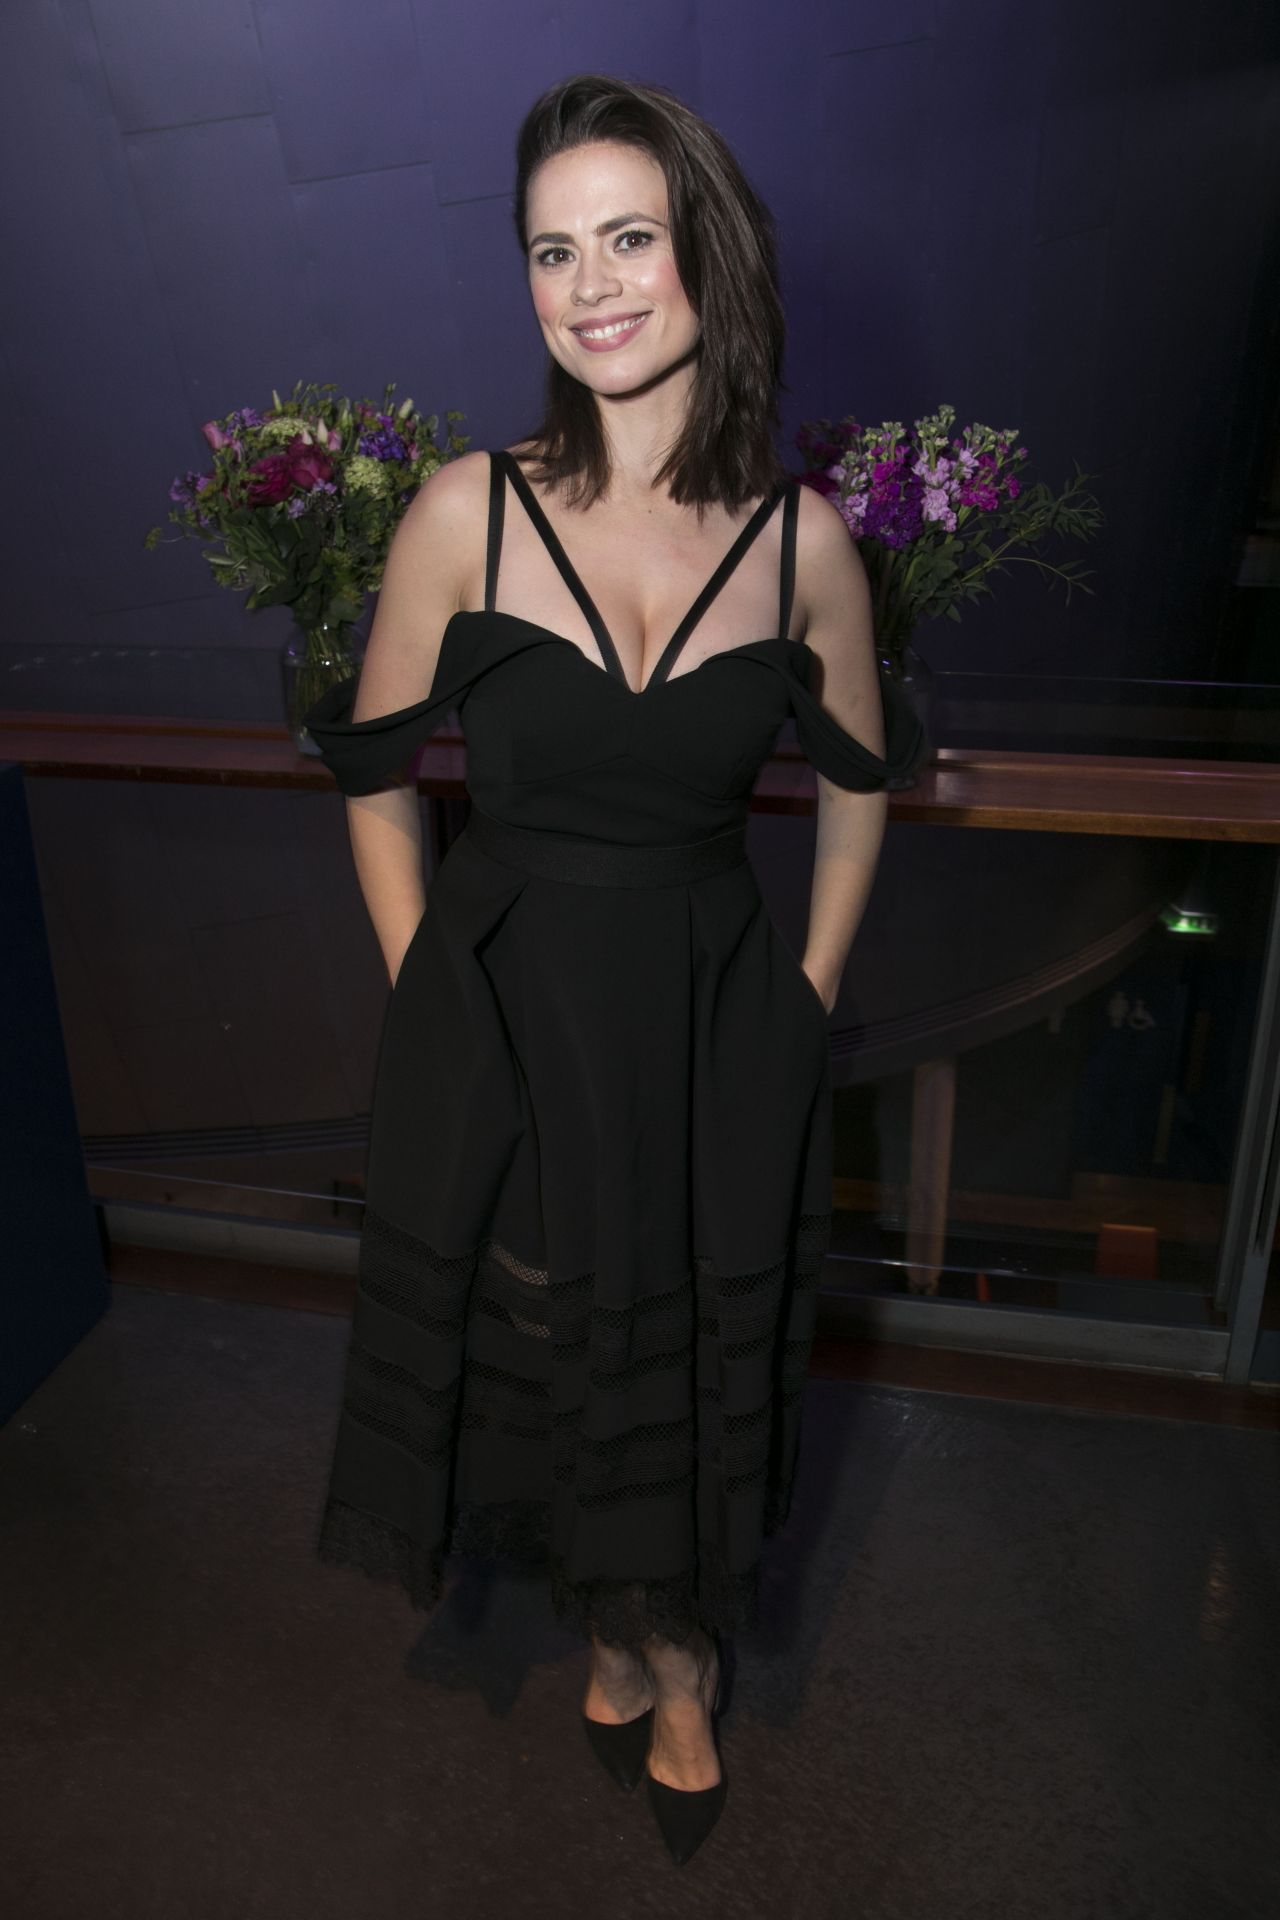 http://celebmafia.com/wp-content/uploads/2018/02/hayley-atwell-dry-powder-after-party-in-london-5.jpg